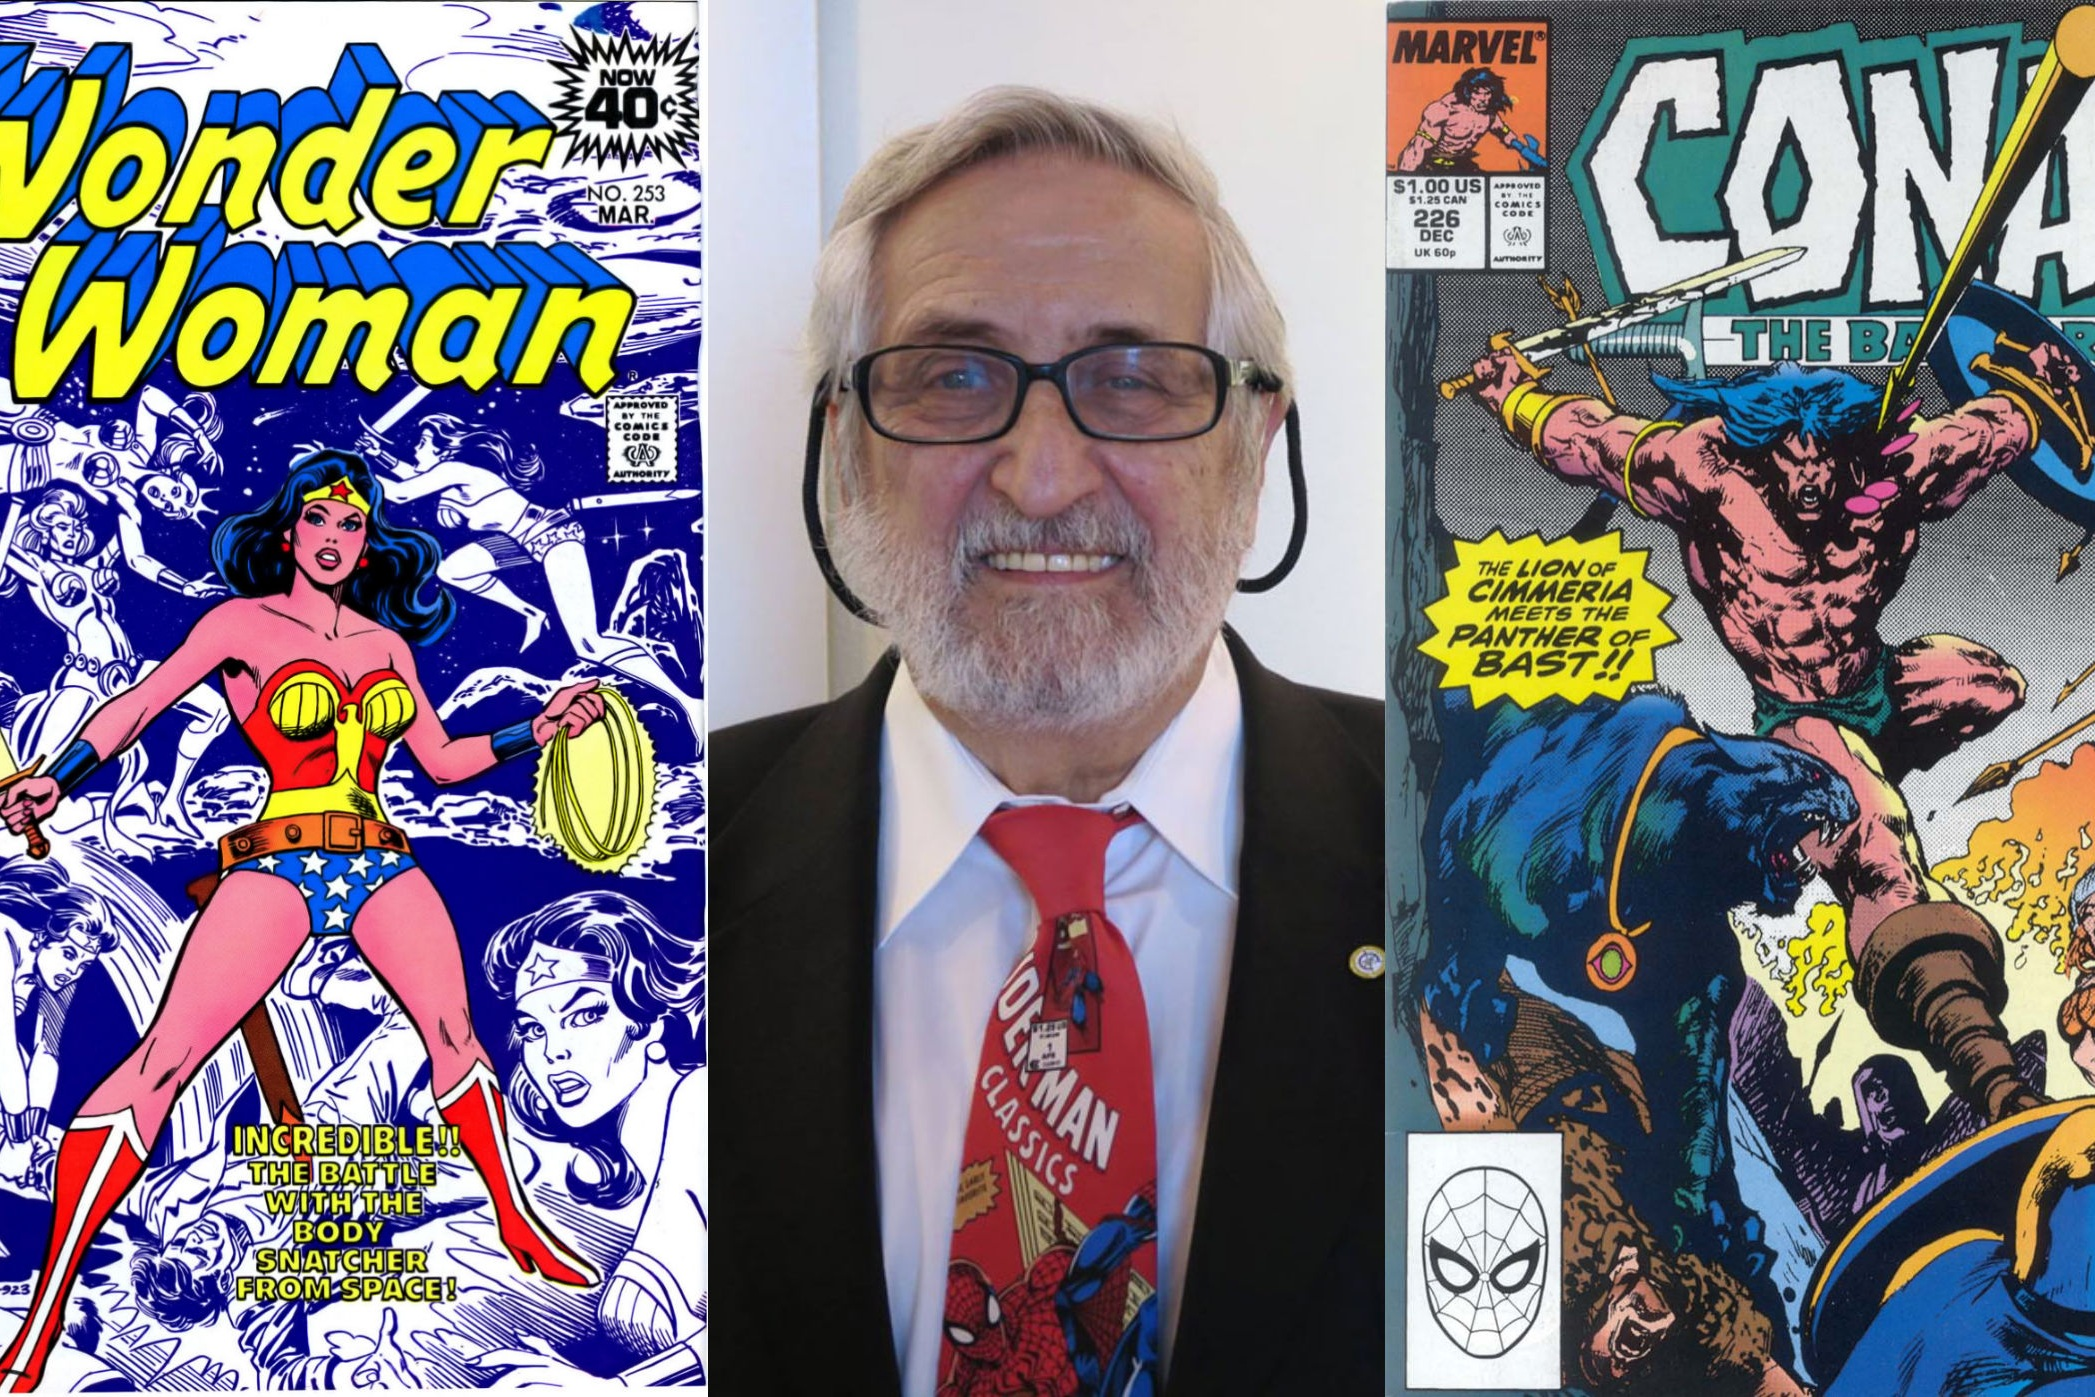 An Interview With Jose Delbo - Silver Age Penciler, Inker, & Cover Artist   Written by Bryan Stroud